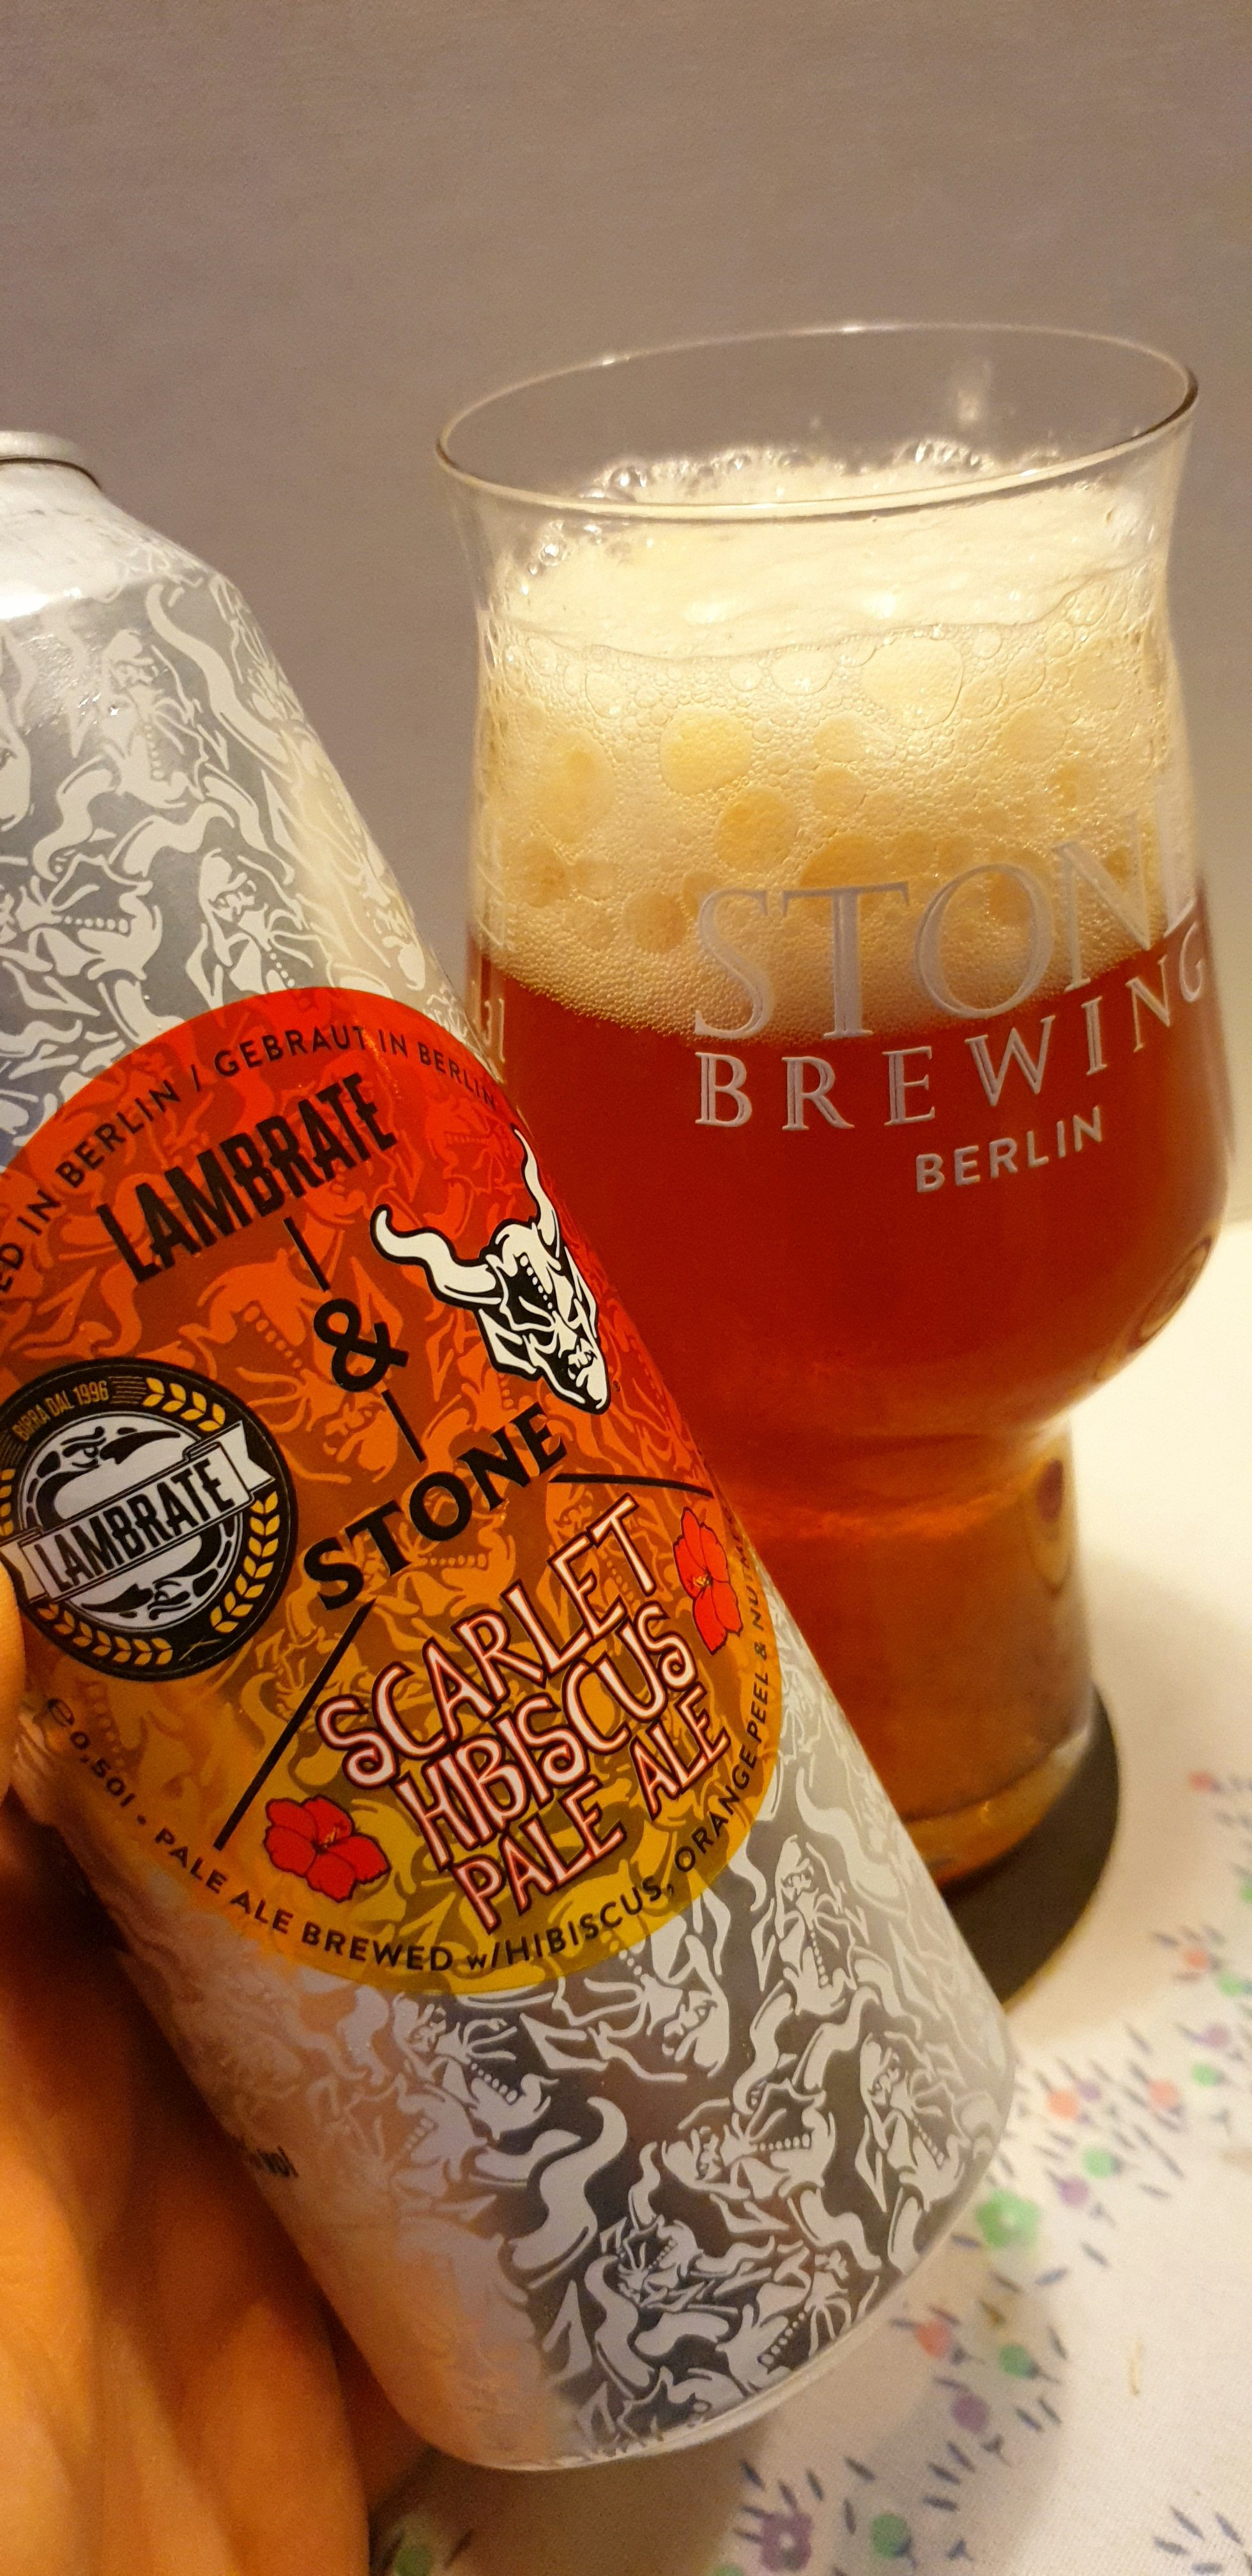 Stone Brewing Berlin – UNIQCAN Series – Scarlet Hibiscus Pale Ale